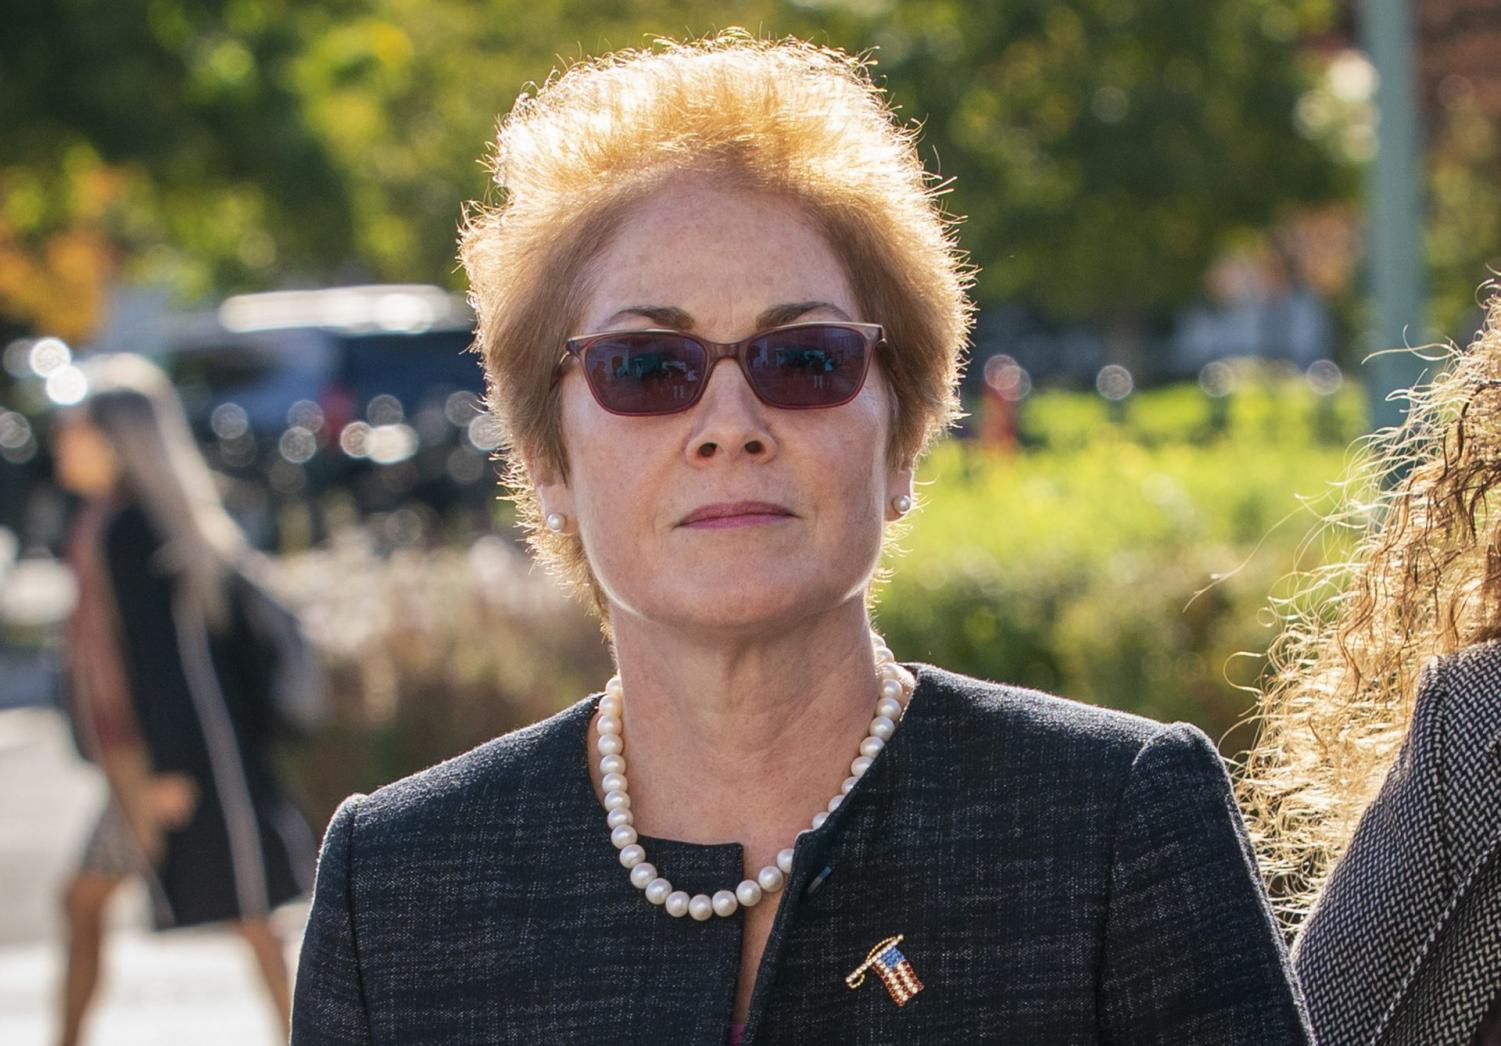 Former U.S. ambassador to Ukraine Marie Yovanovitch, arrives Capitol Hill, Oct. 11, 2019.